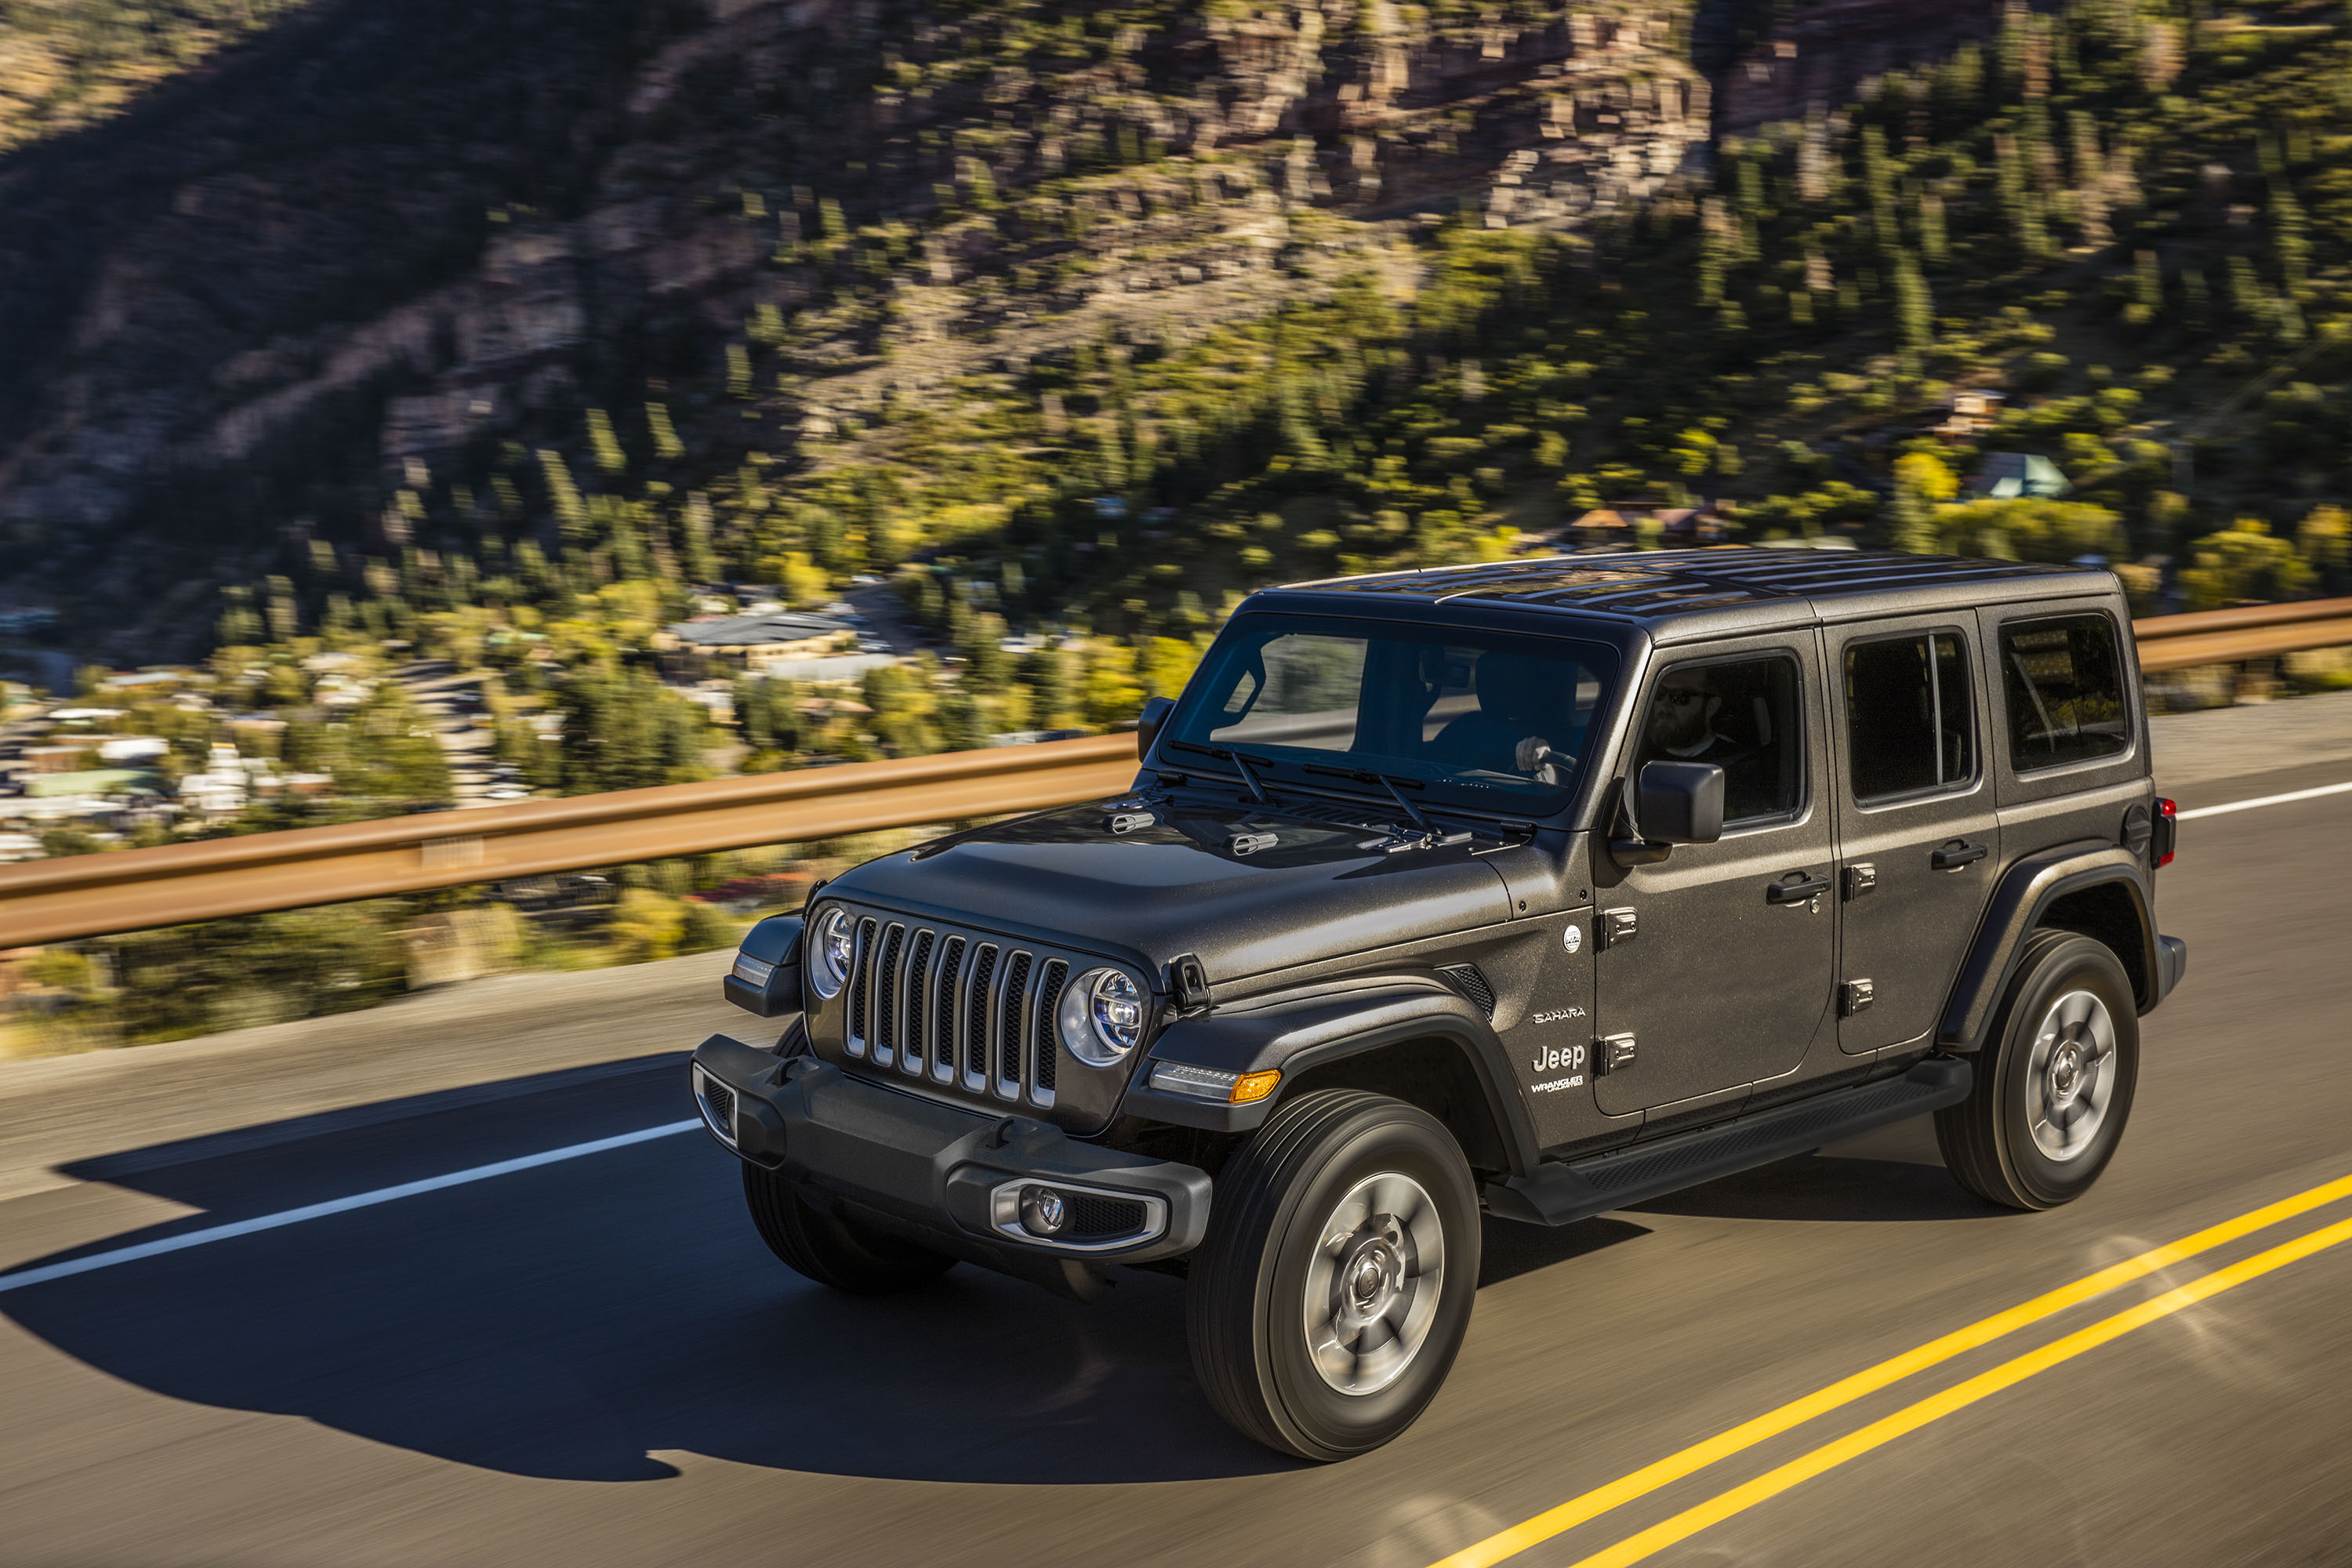 rubicon of duty nc call unlimited door jeep version wrangler wiki in file jk